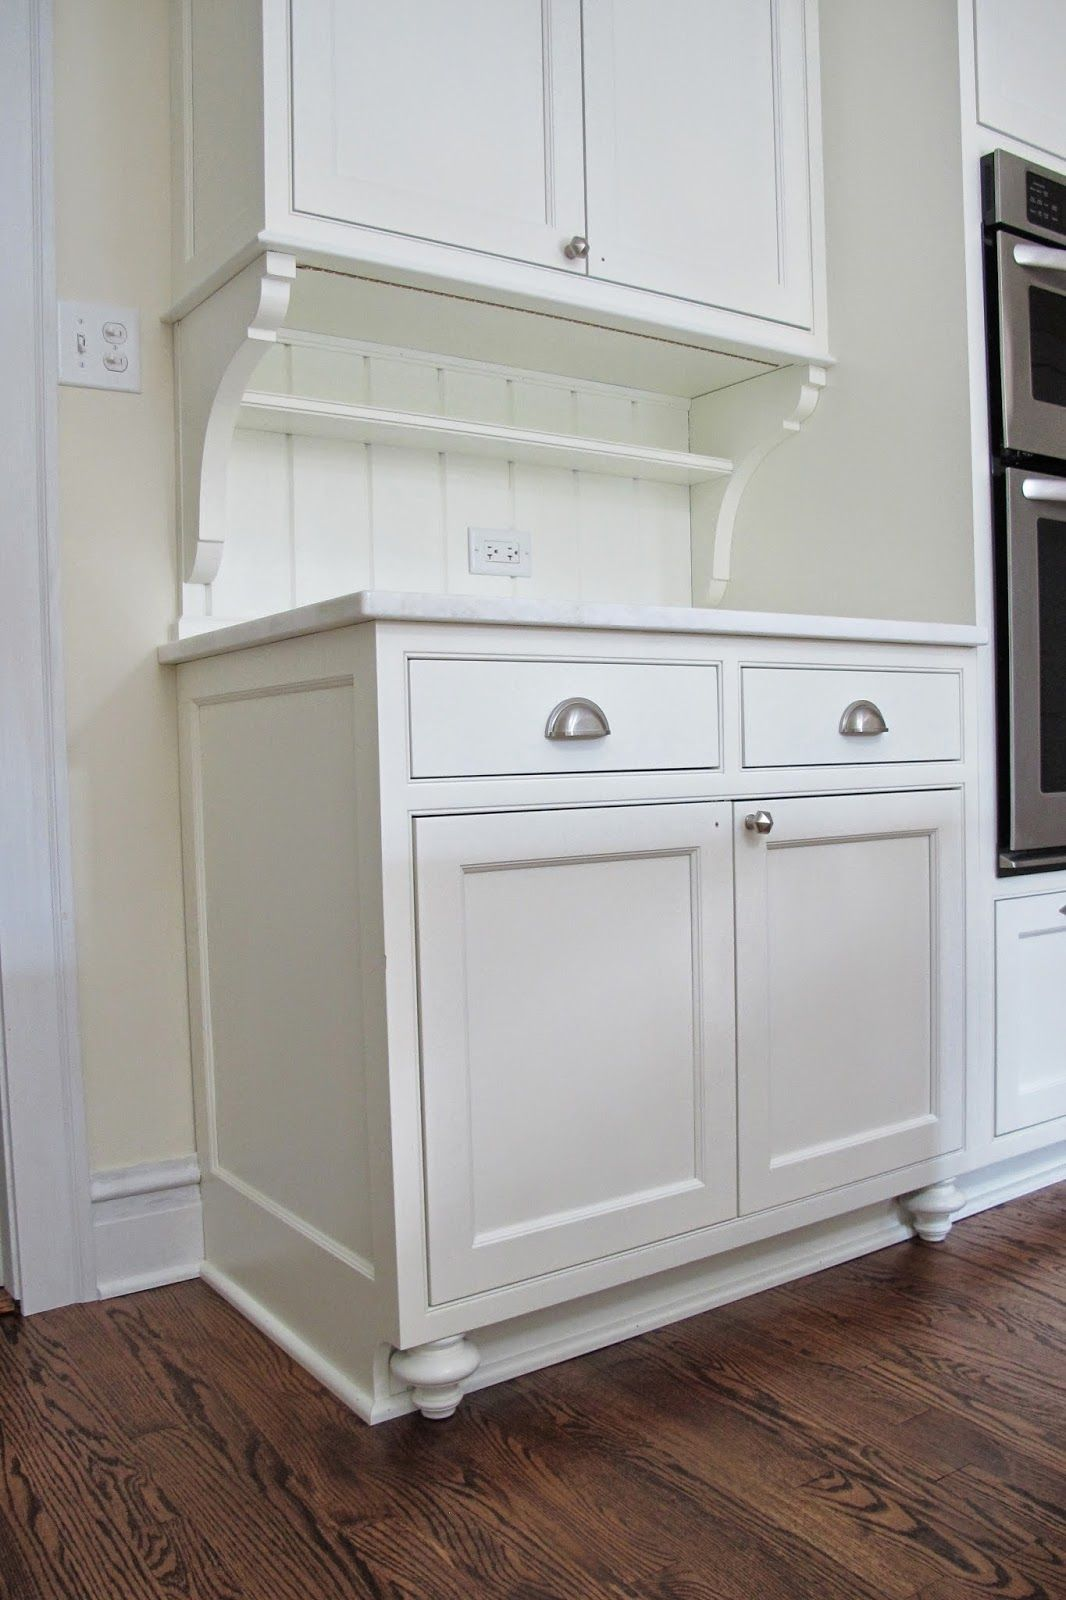 Best Kitchen Gallery: How To Add Feet To Bottoms Of Kitchen Cabi S It Started With of Kitchen Cabinet Feet on cal-ite.com